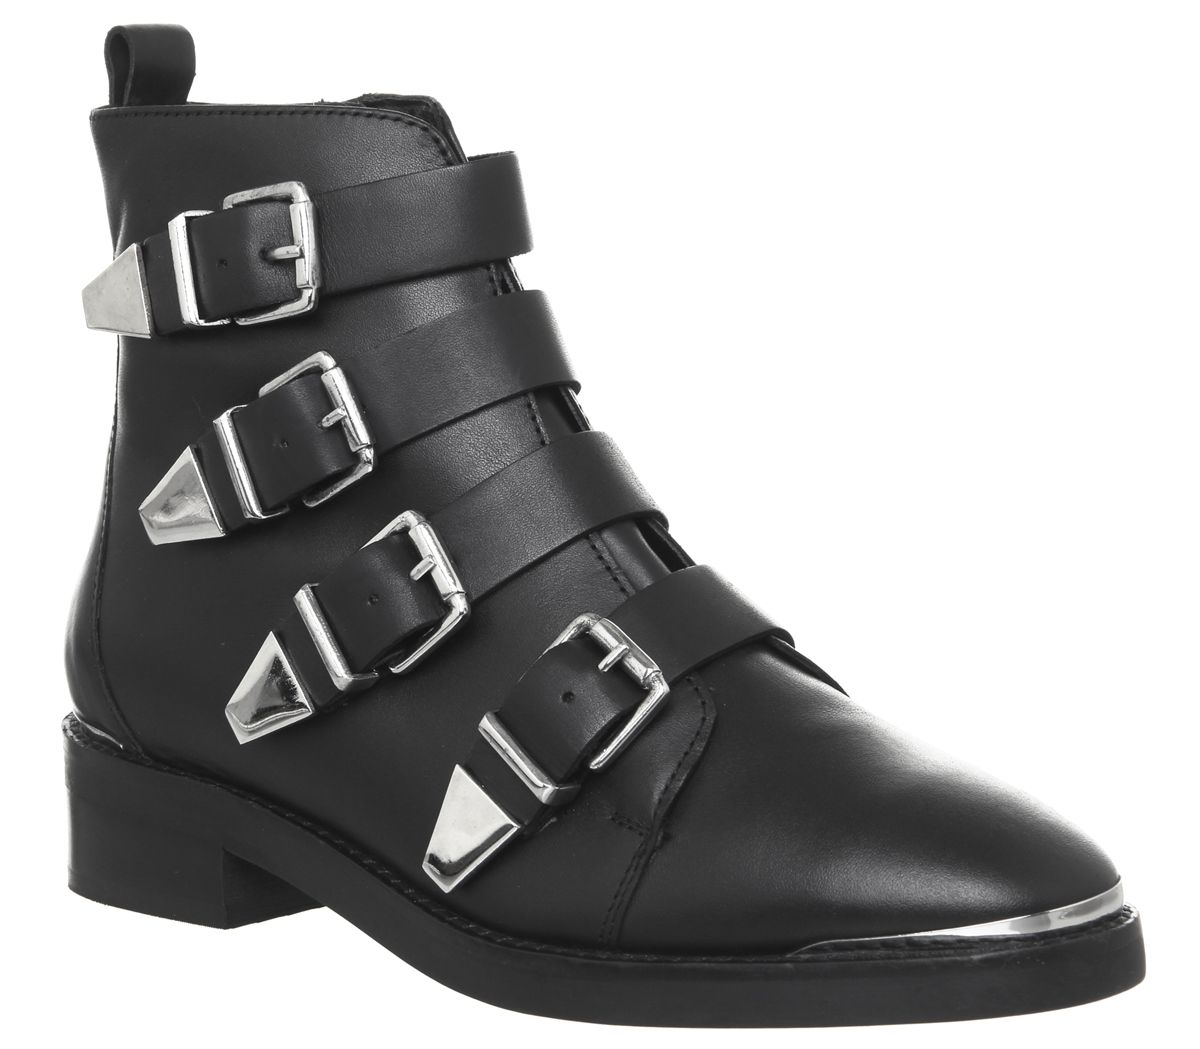 14 ankle boots will transform your